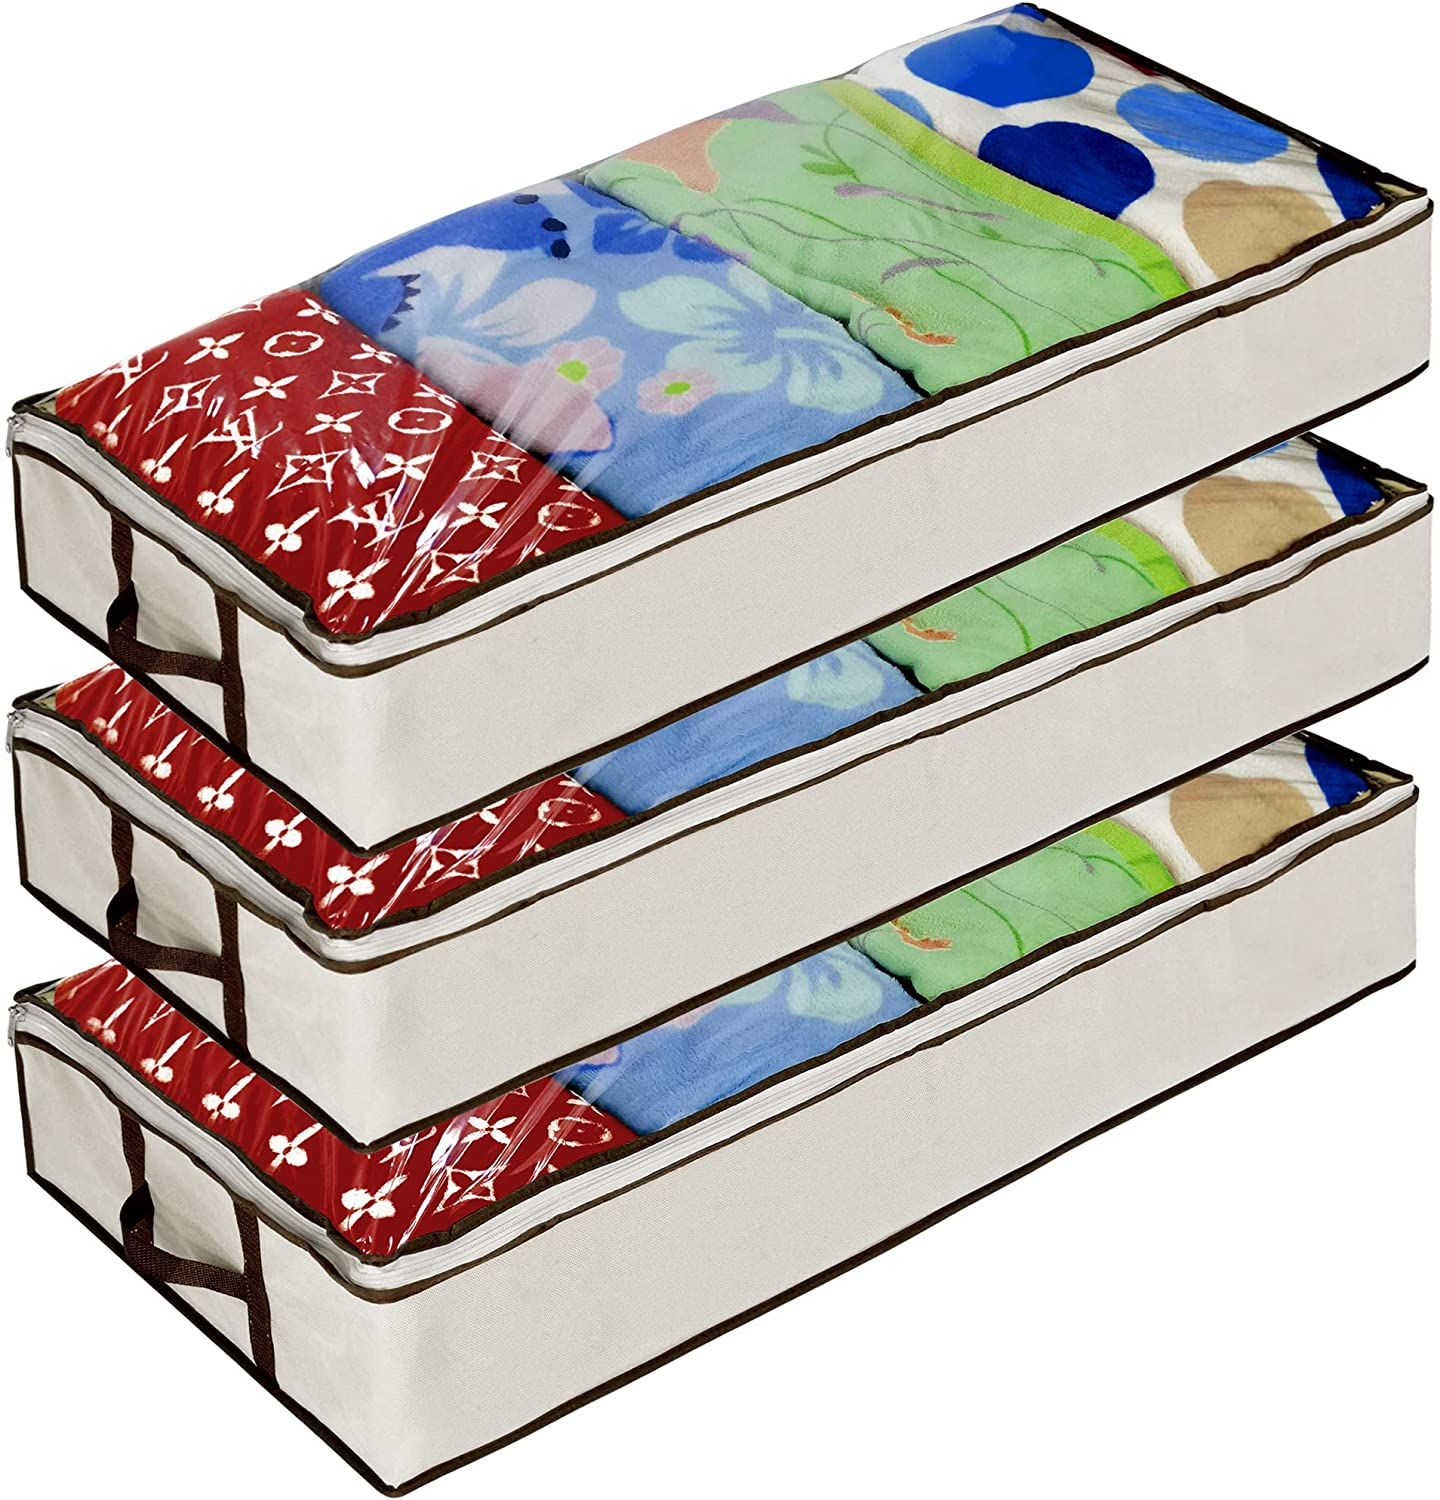 Ziz Home unisex Zippered Under Bed Storage Underb Cheap mail order specialty store for Used Pack Bag 3